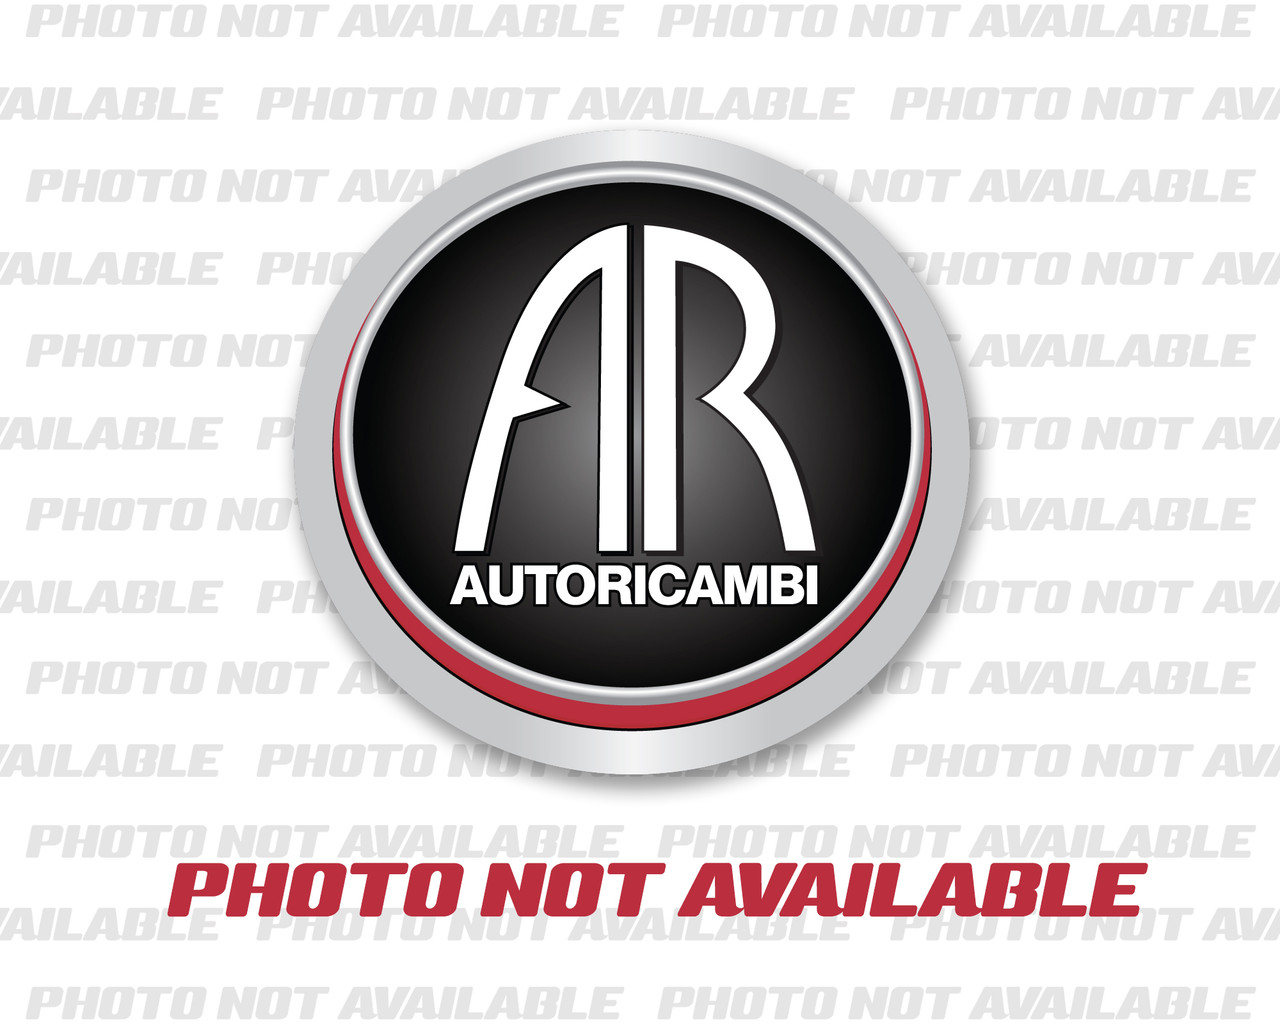 Front Brake rotor or disc 2012-on FIAT 500 all 2 door models - Abarth 500 and Turbo models  - Auto Ricambi